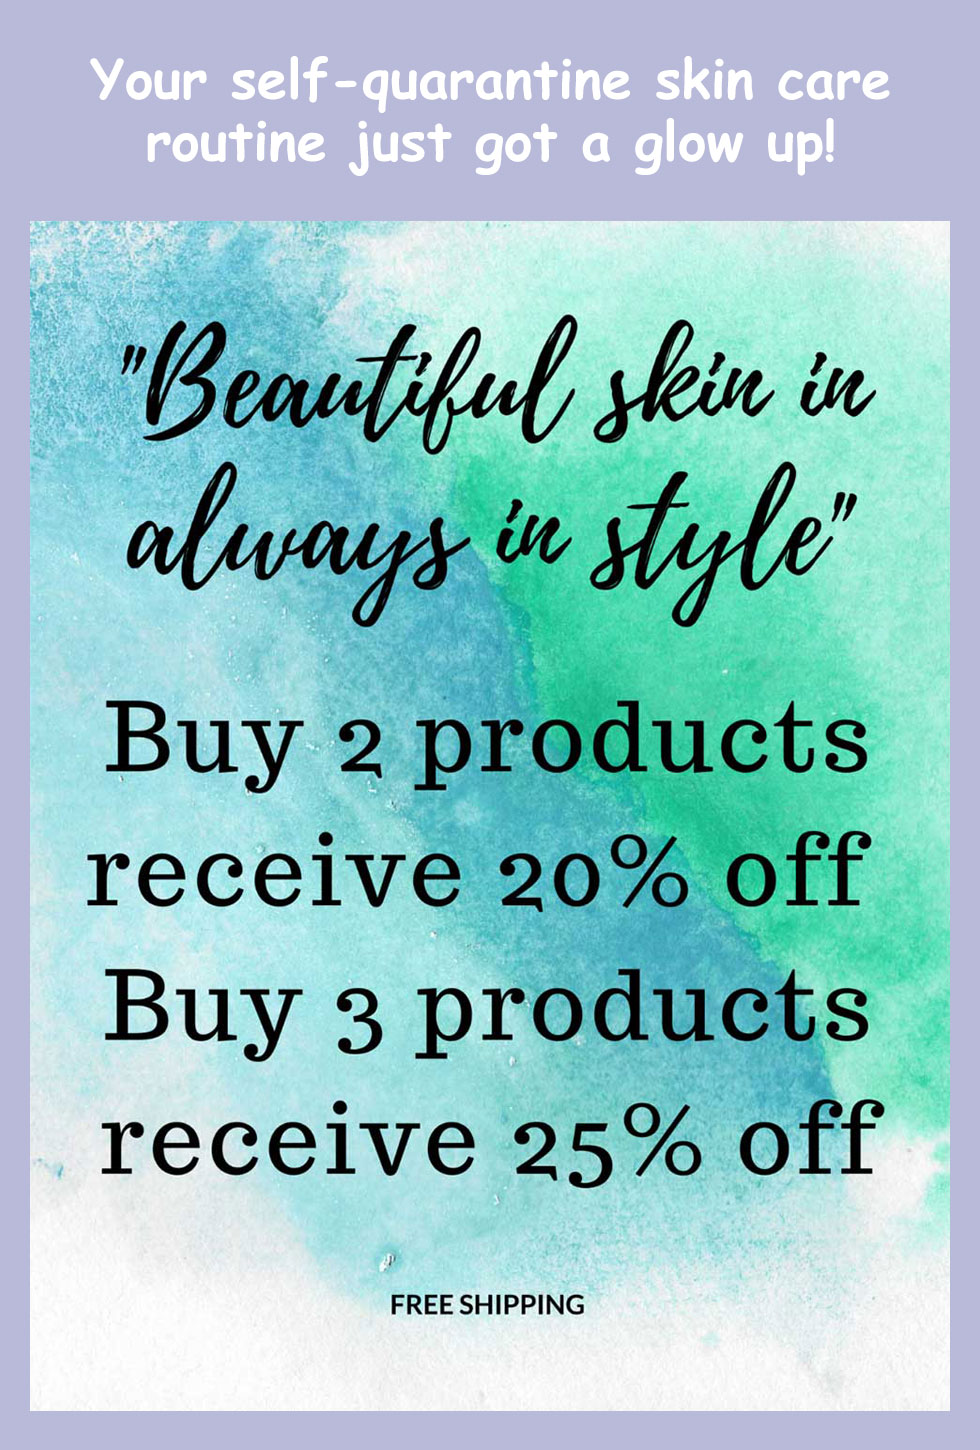 Beautiful skin is always in style - buy 2 products receive 20% off - Buy 3 products receive 25% off